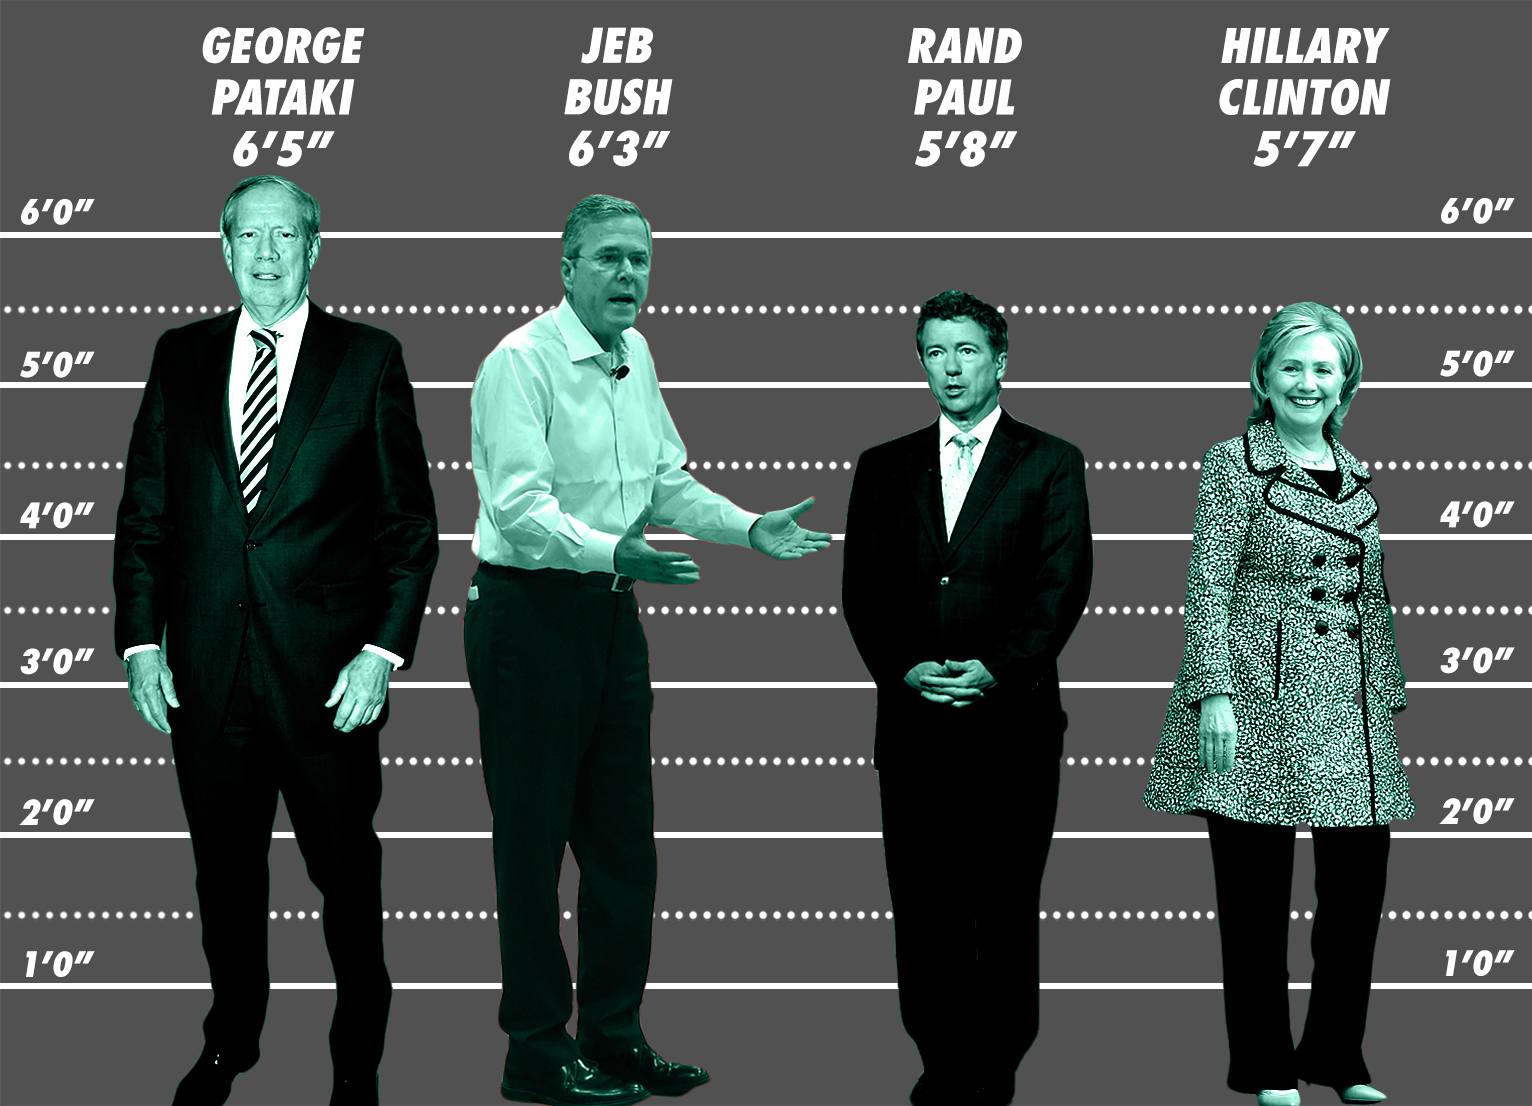 How Tall Are the 2016 Presidential Candidates  Politics